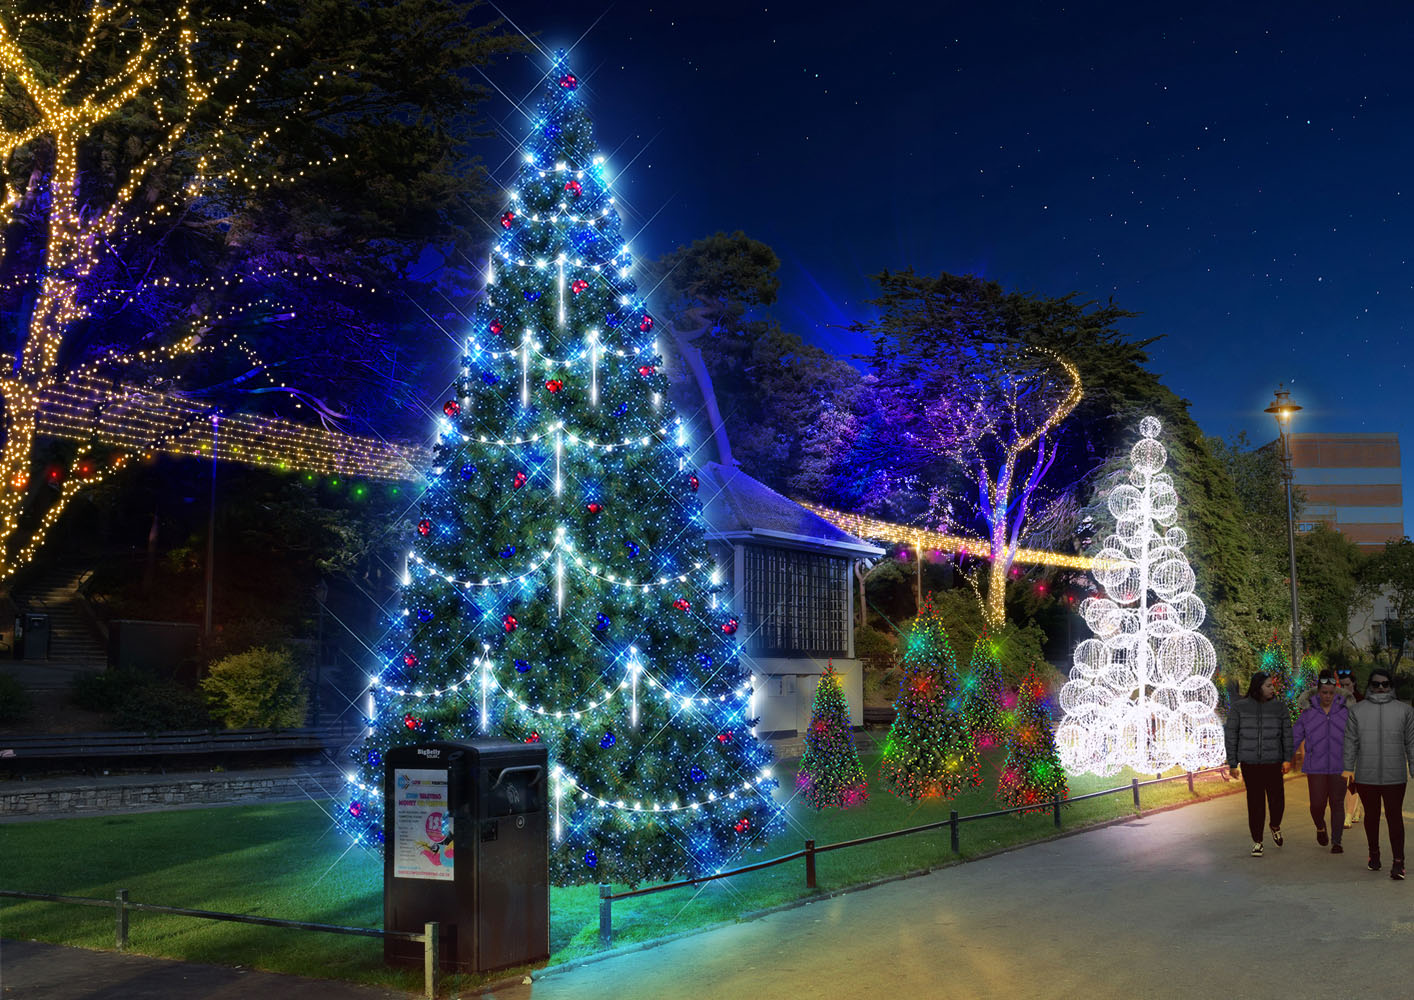 A mock up of illuminated Christmas Trees in Bournemouth's Lower Gardens.